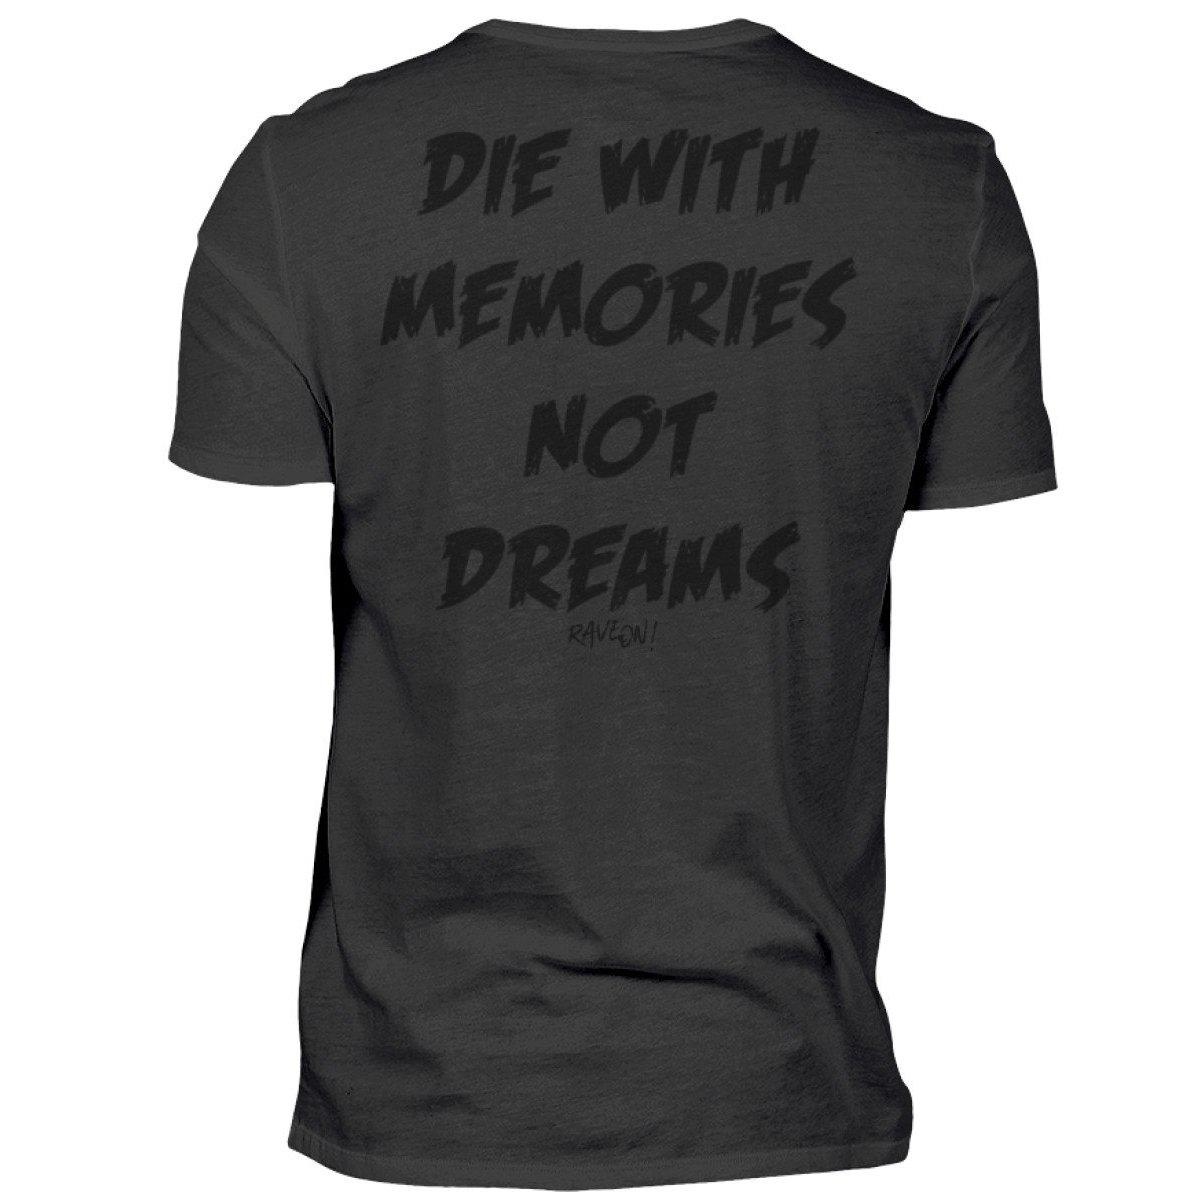 DIE WITH MEMORIES NOT DreamS - Rave On!® - Premiumshirt Herren Premium Shirt - Rave On!® der Club & Techno Szene Shop für Coole Junge Mode Streetwear Style & Fashion Outfits + Sexy Festival 420 Stuff